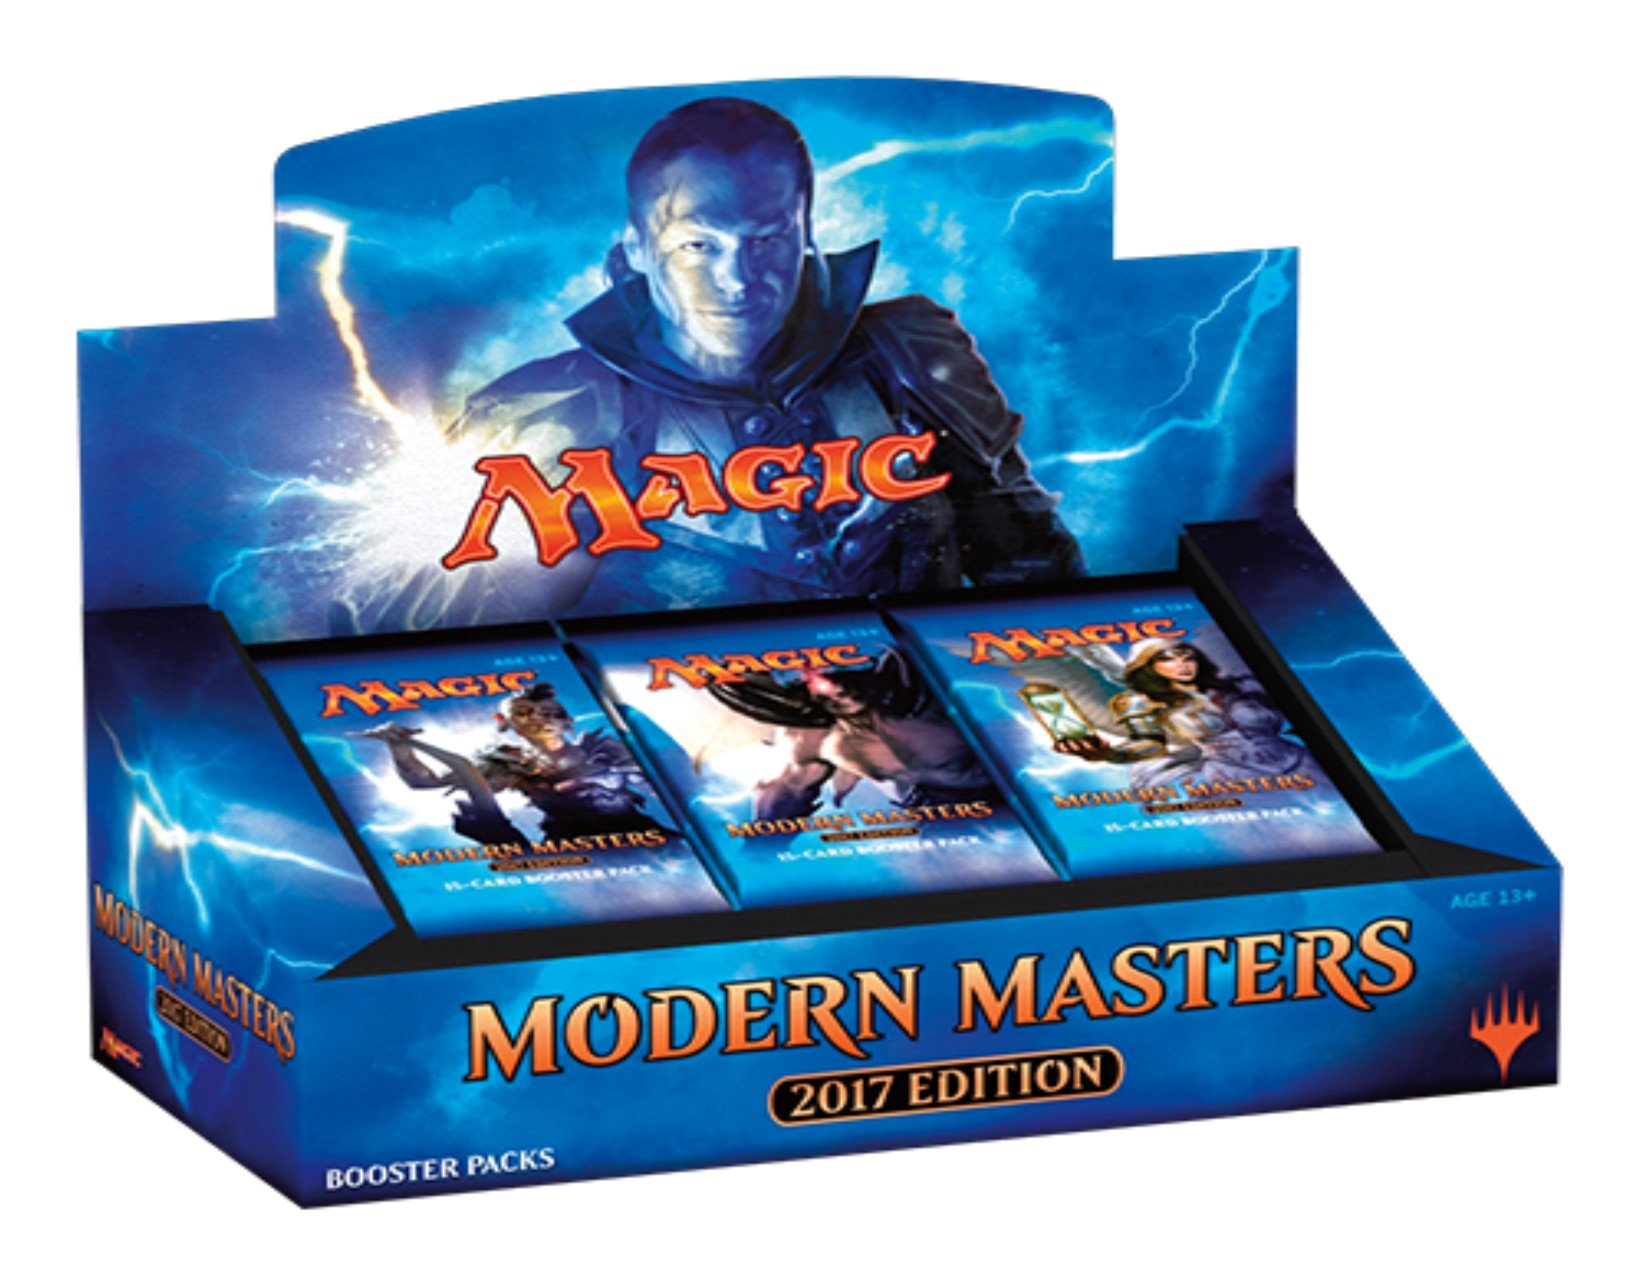 Magic The Gathering: 2017 Modern Masters Booster Box Factory Sealed by Magic: the Gathering